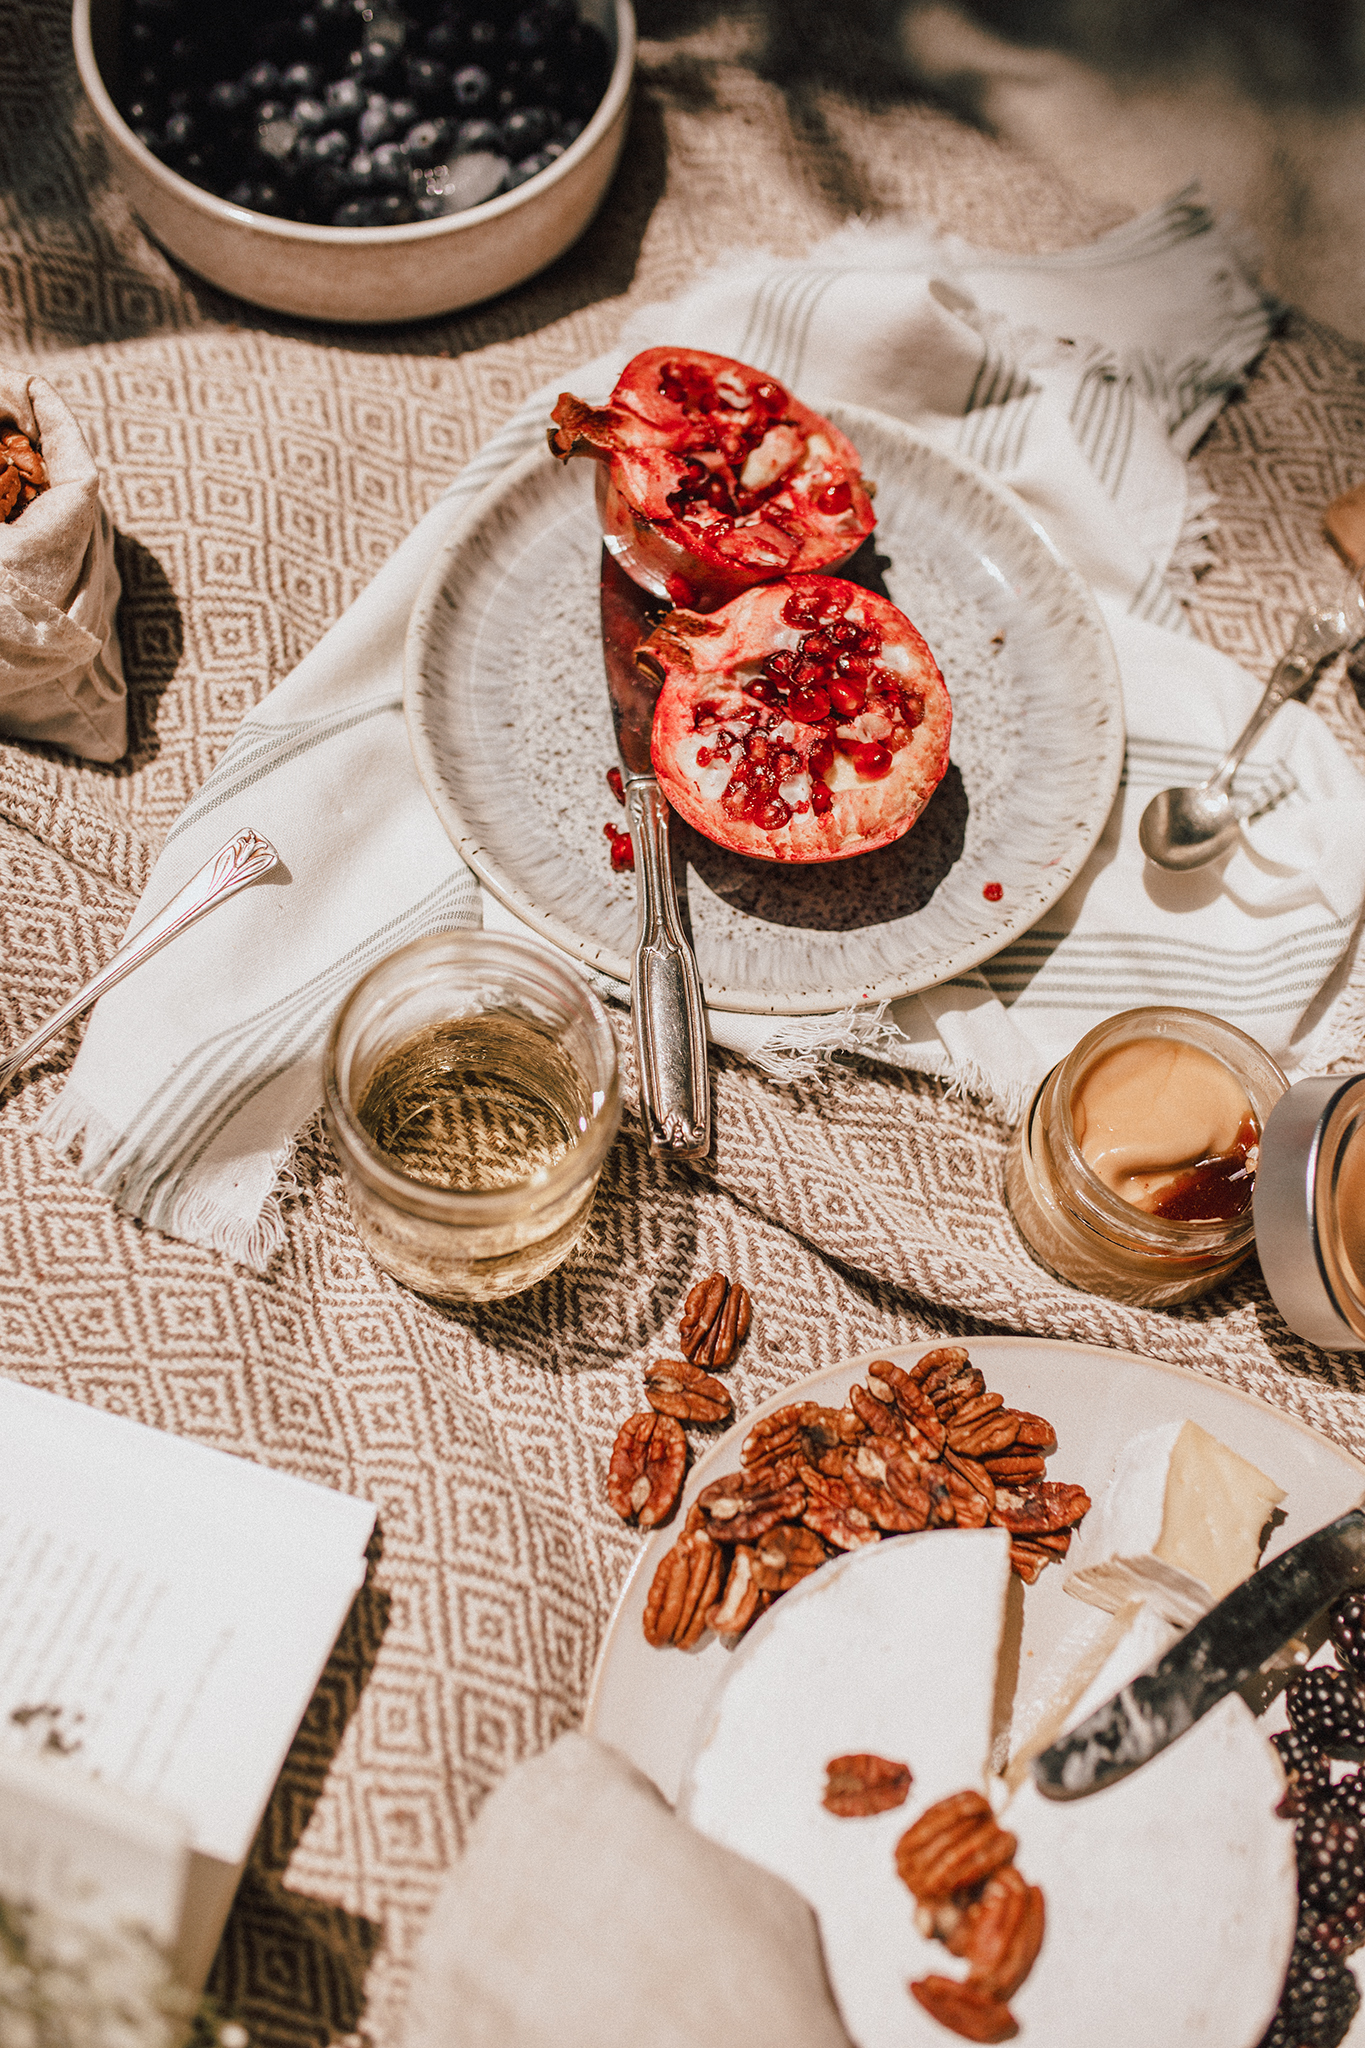 A simple and delicious picnic with Finca Las Moras Lady Blanc